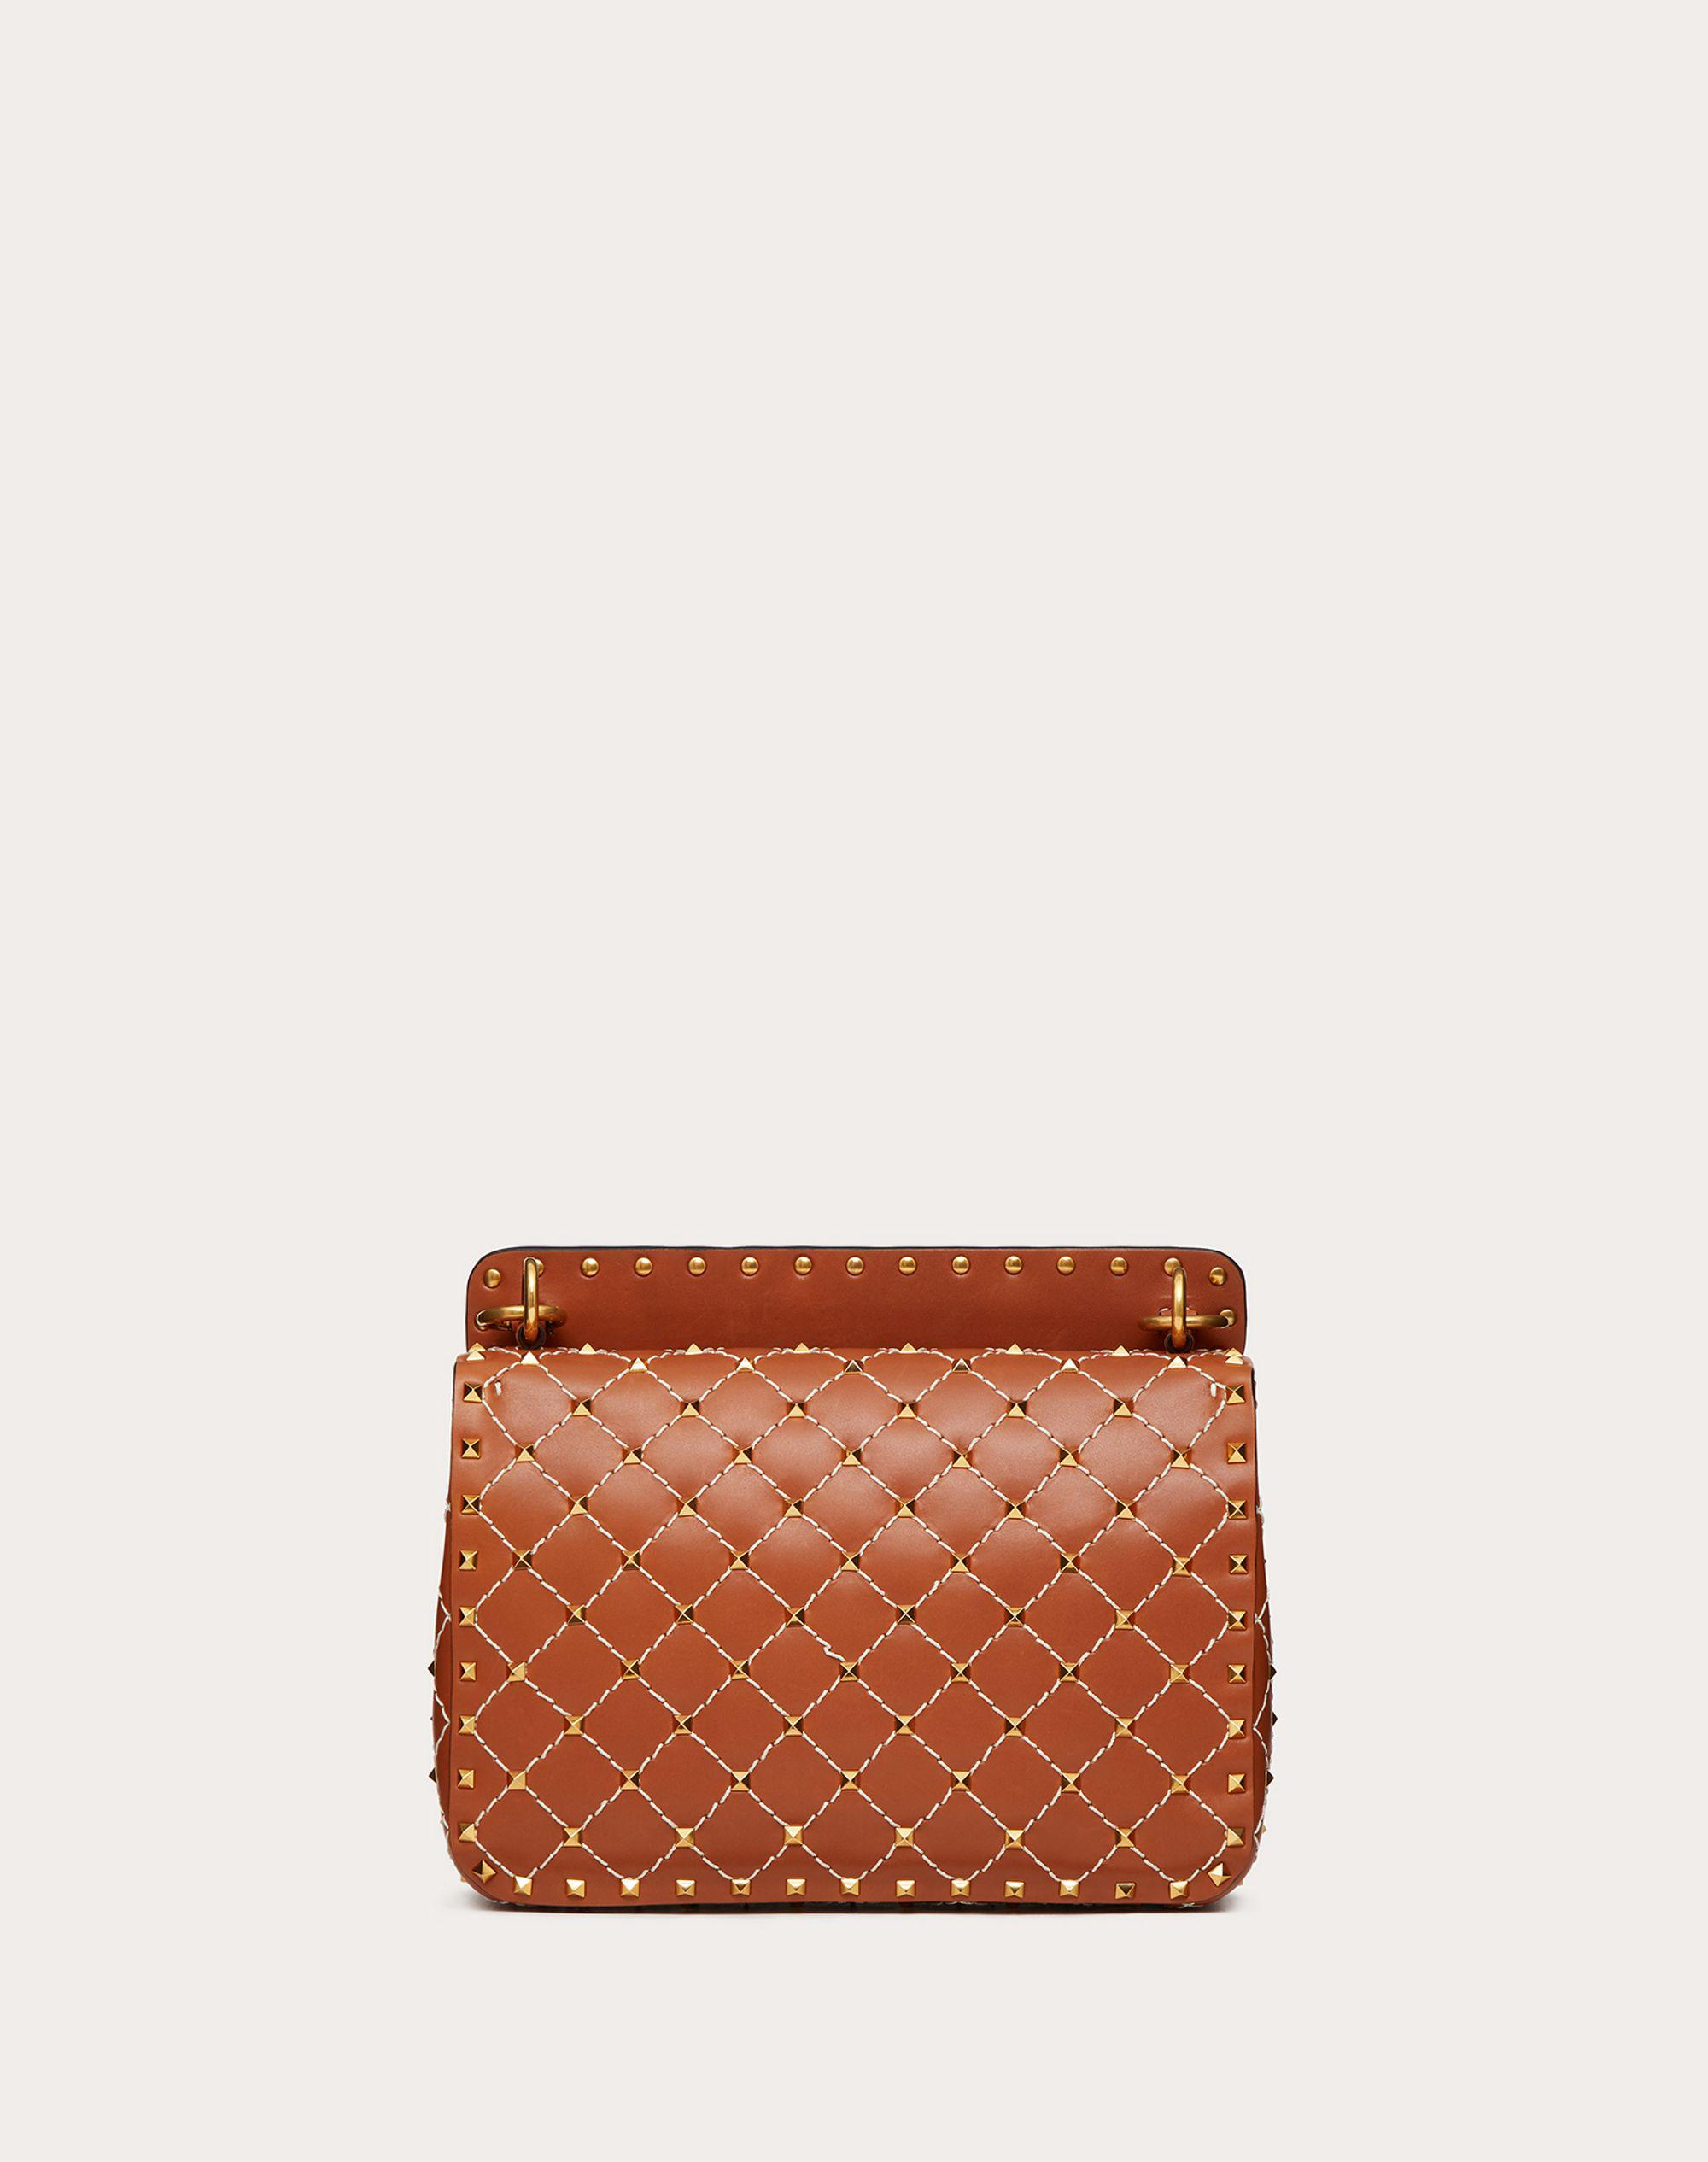 Medium Spike.It Nappa Bag with Leather Grid Detailing 2